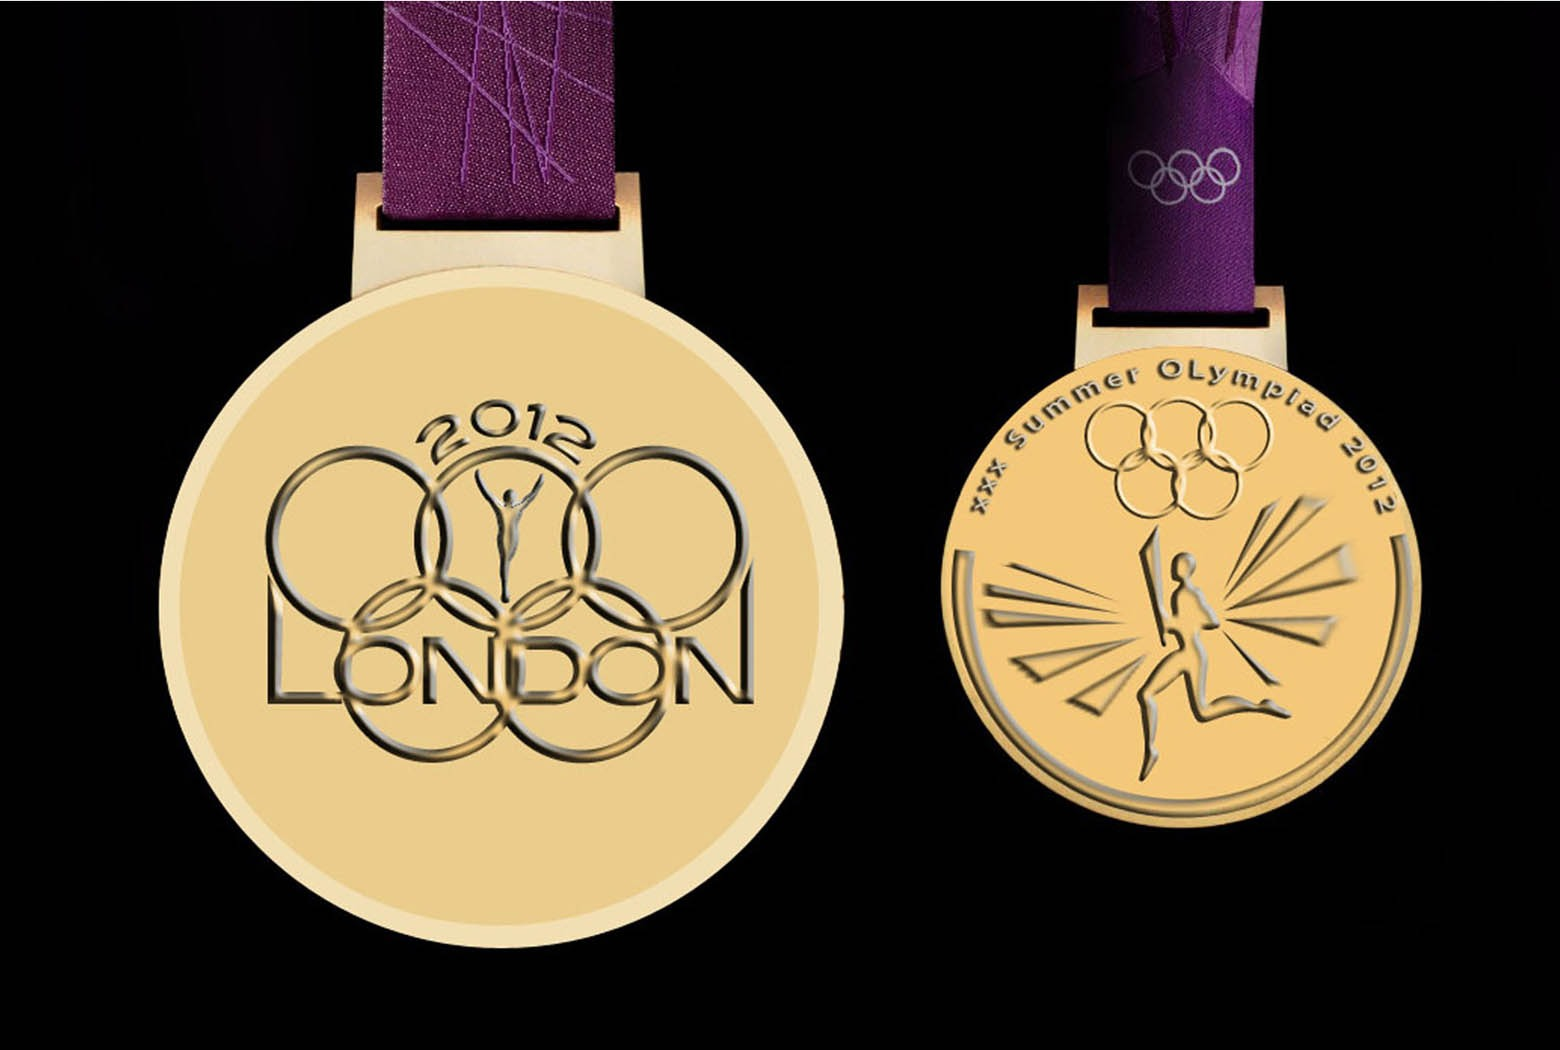 medal Olympic London Olympic by Ganna Sheyko